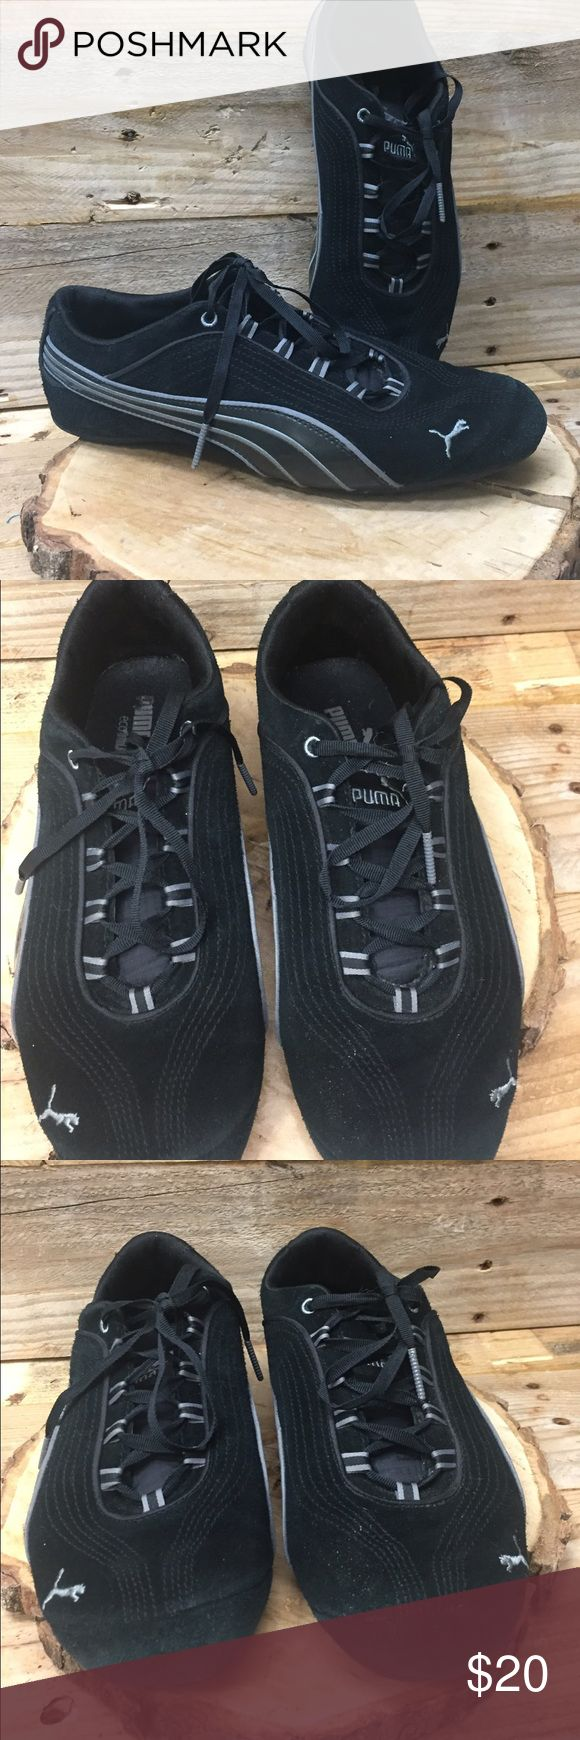 Women's Black Puma Suede Athletic Shoes size 10 Fashionable black suede and leather Pima athletic shoes. Preowned and in good clean condition. Check out my closet to save on bundles . Reasonable offers accepted. Puma Shoes Sneakers